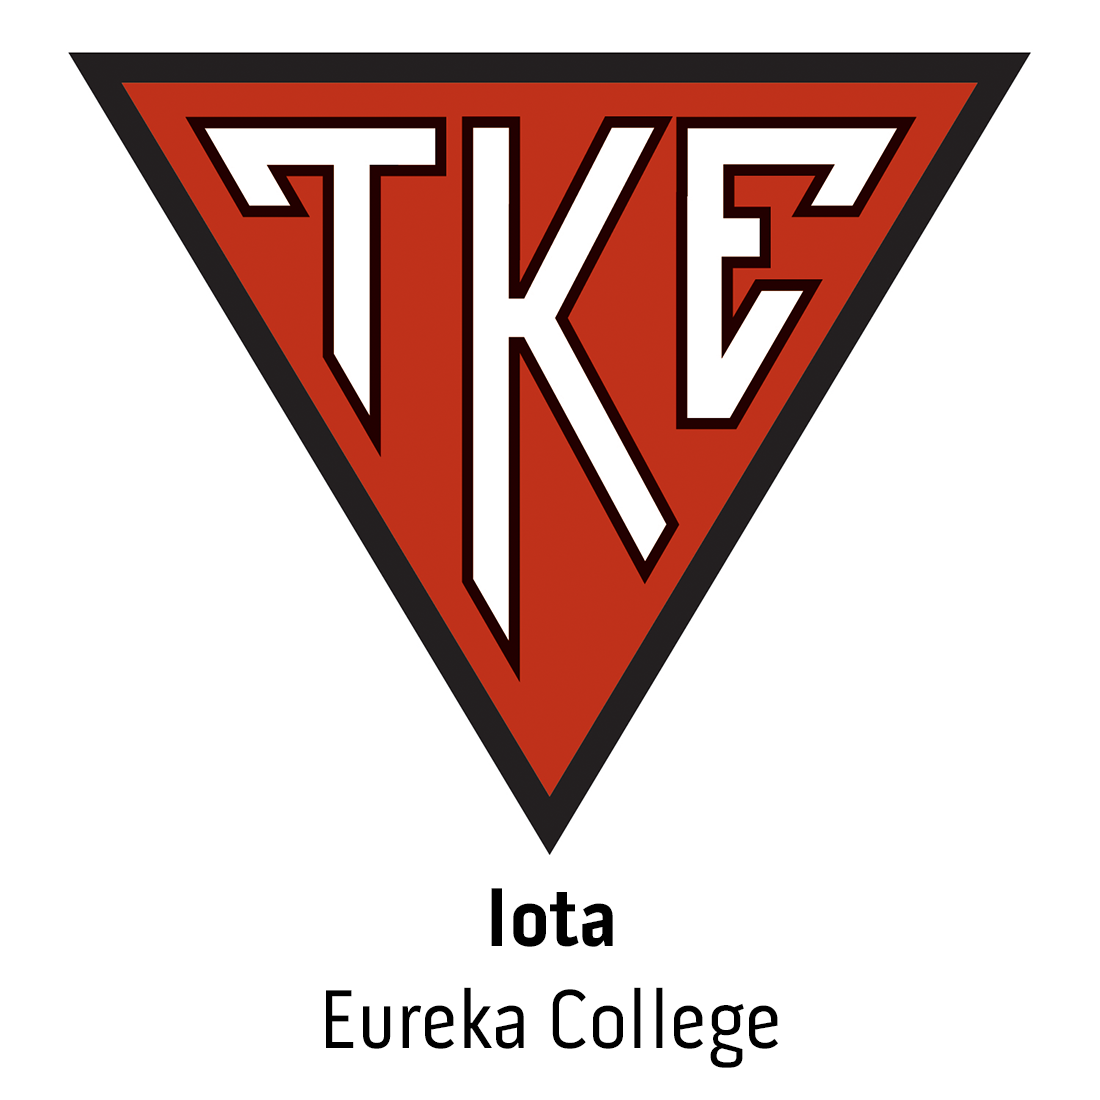 Iota Chapter at Eureka College